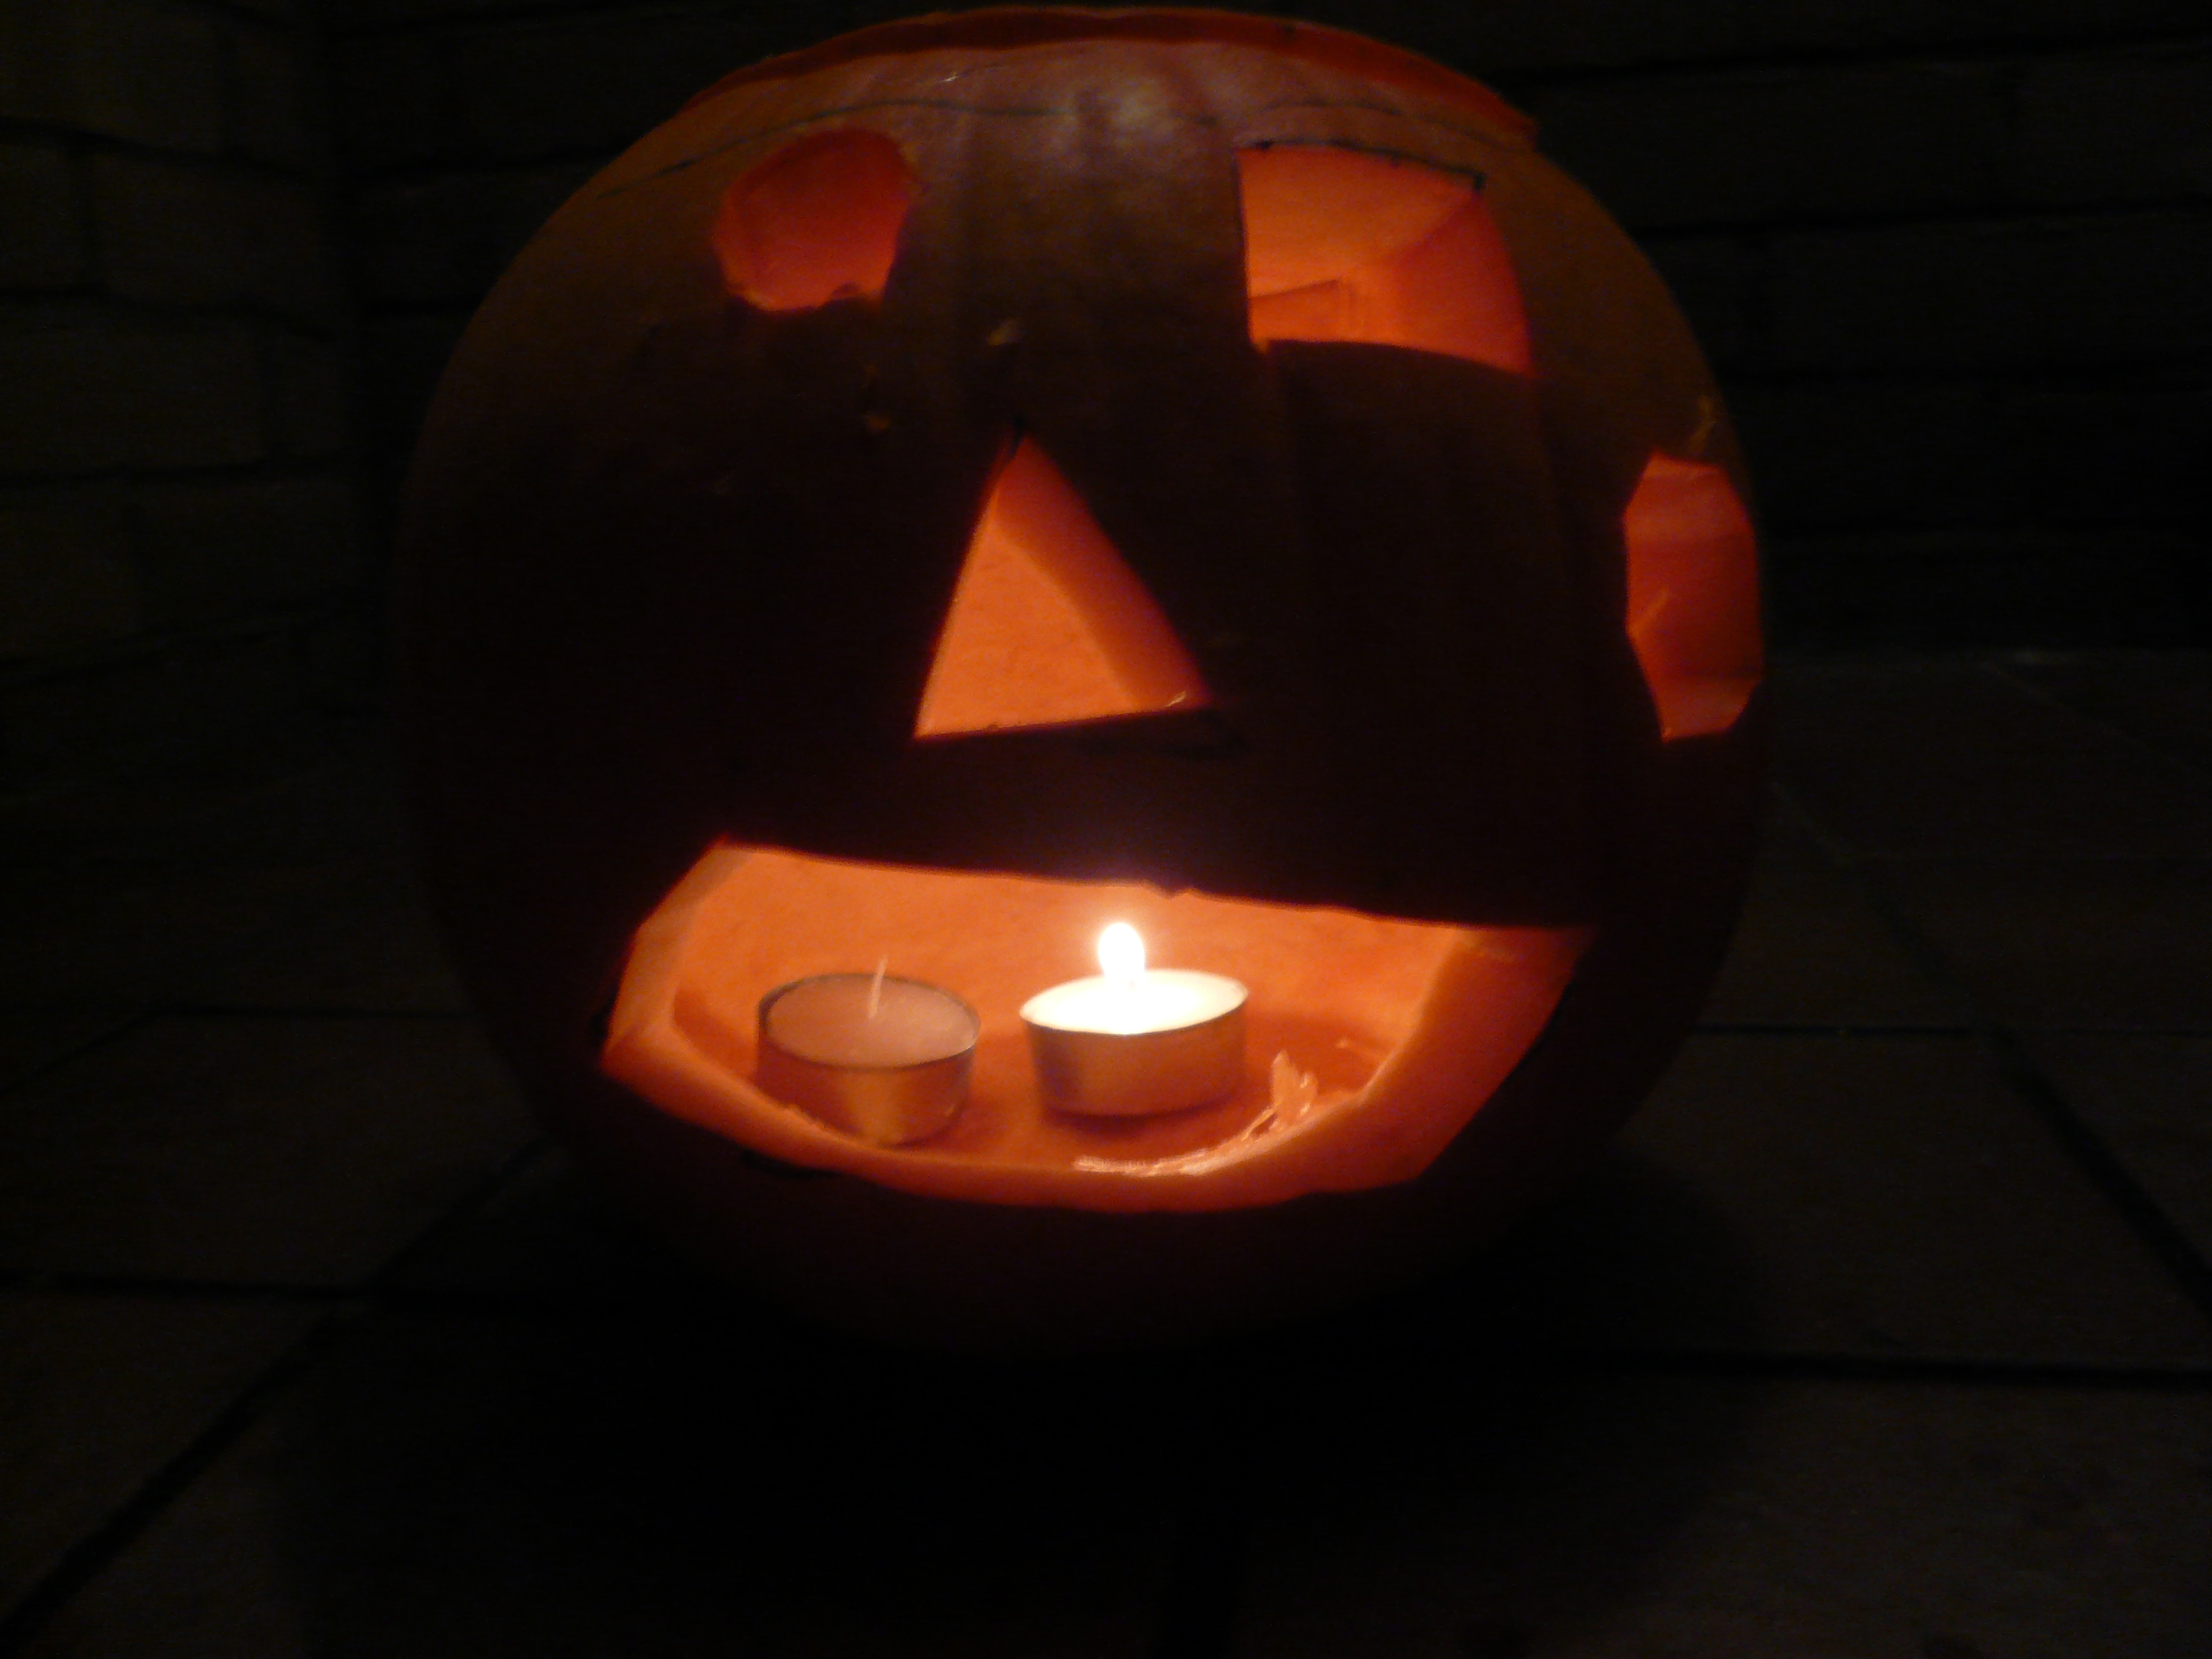 Pumpkins are traditionally carved into lanterns on All Souls Day (Hallowe'en) to ward off spirits.